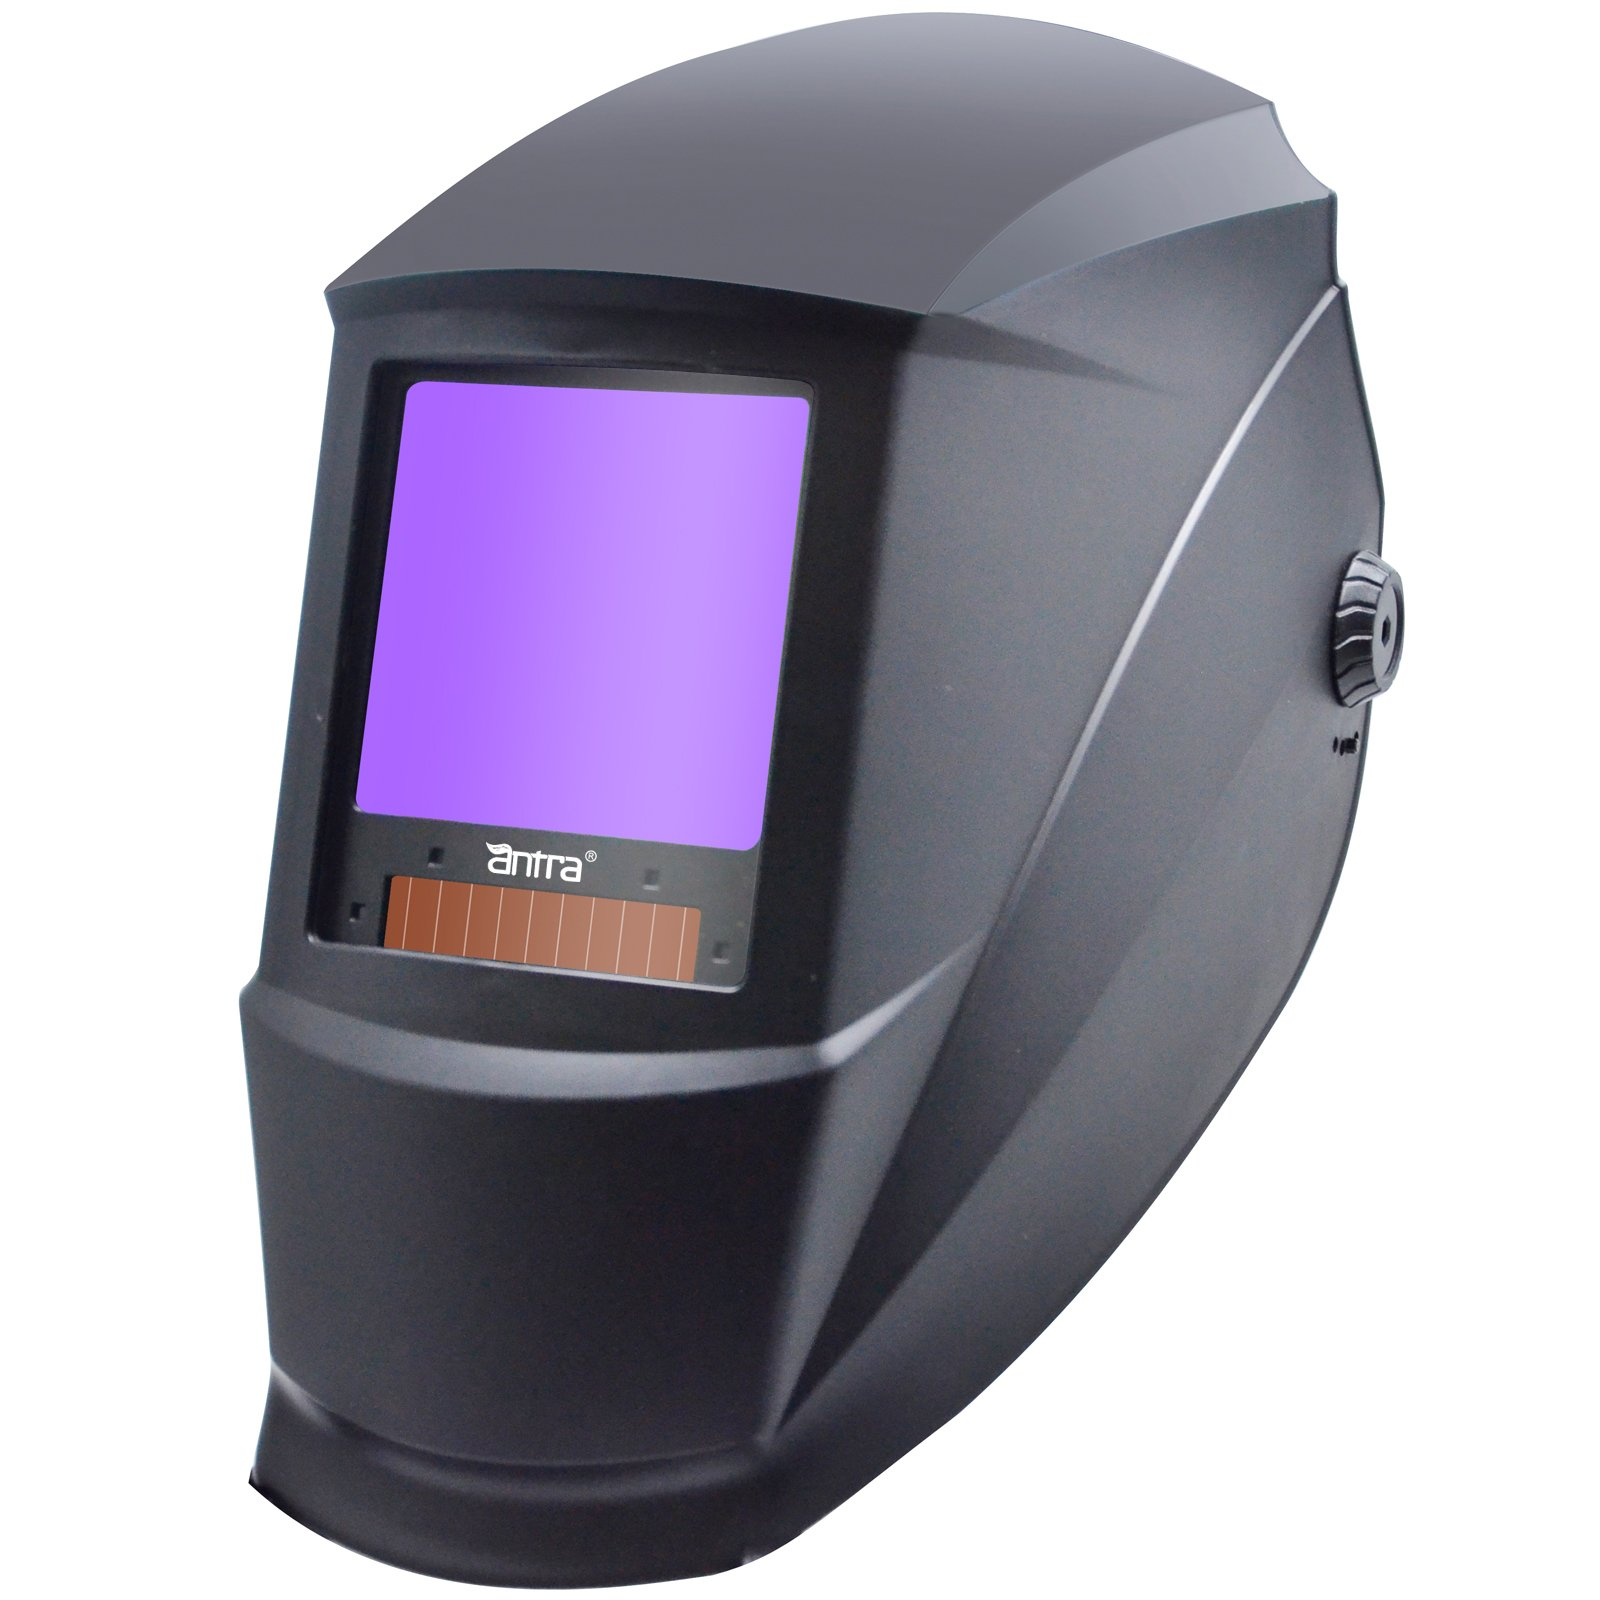 Antra AH7-X30P-0000 Digital Controlled Solar Powered Auto Darkening Welding Helmet Wide Shade 4/5-8/9-13 With Grinding Feature Extra Lens Covers Great for TIG, MIG, MMA, Plasma